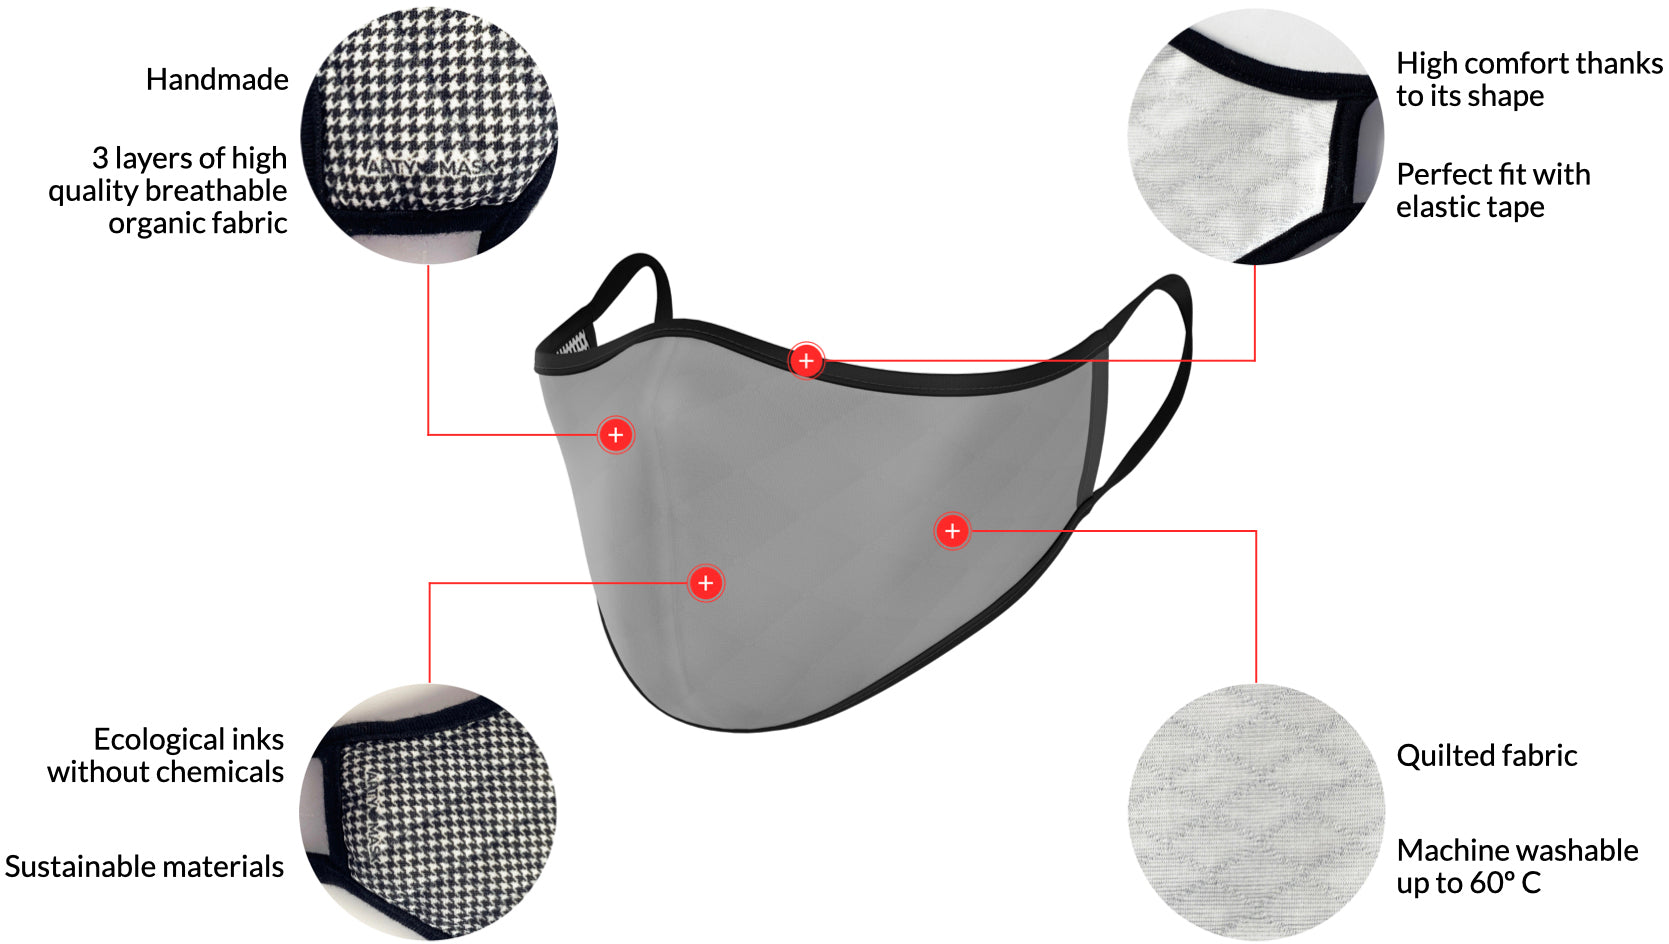 ArtyMask reusable Face Mask features